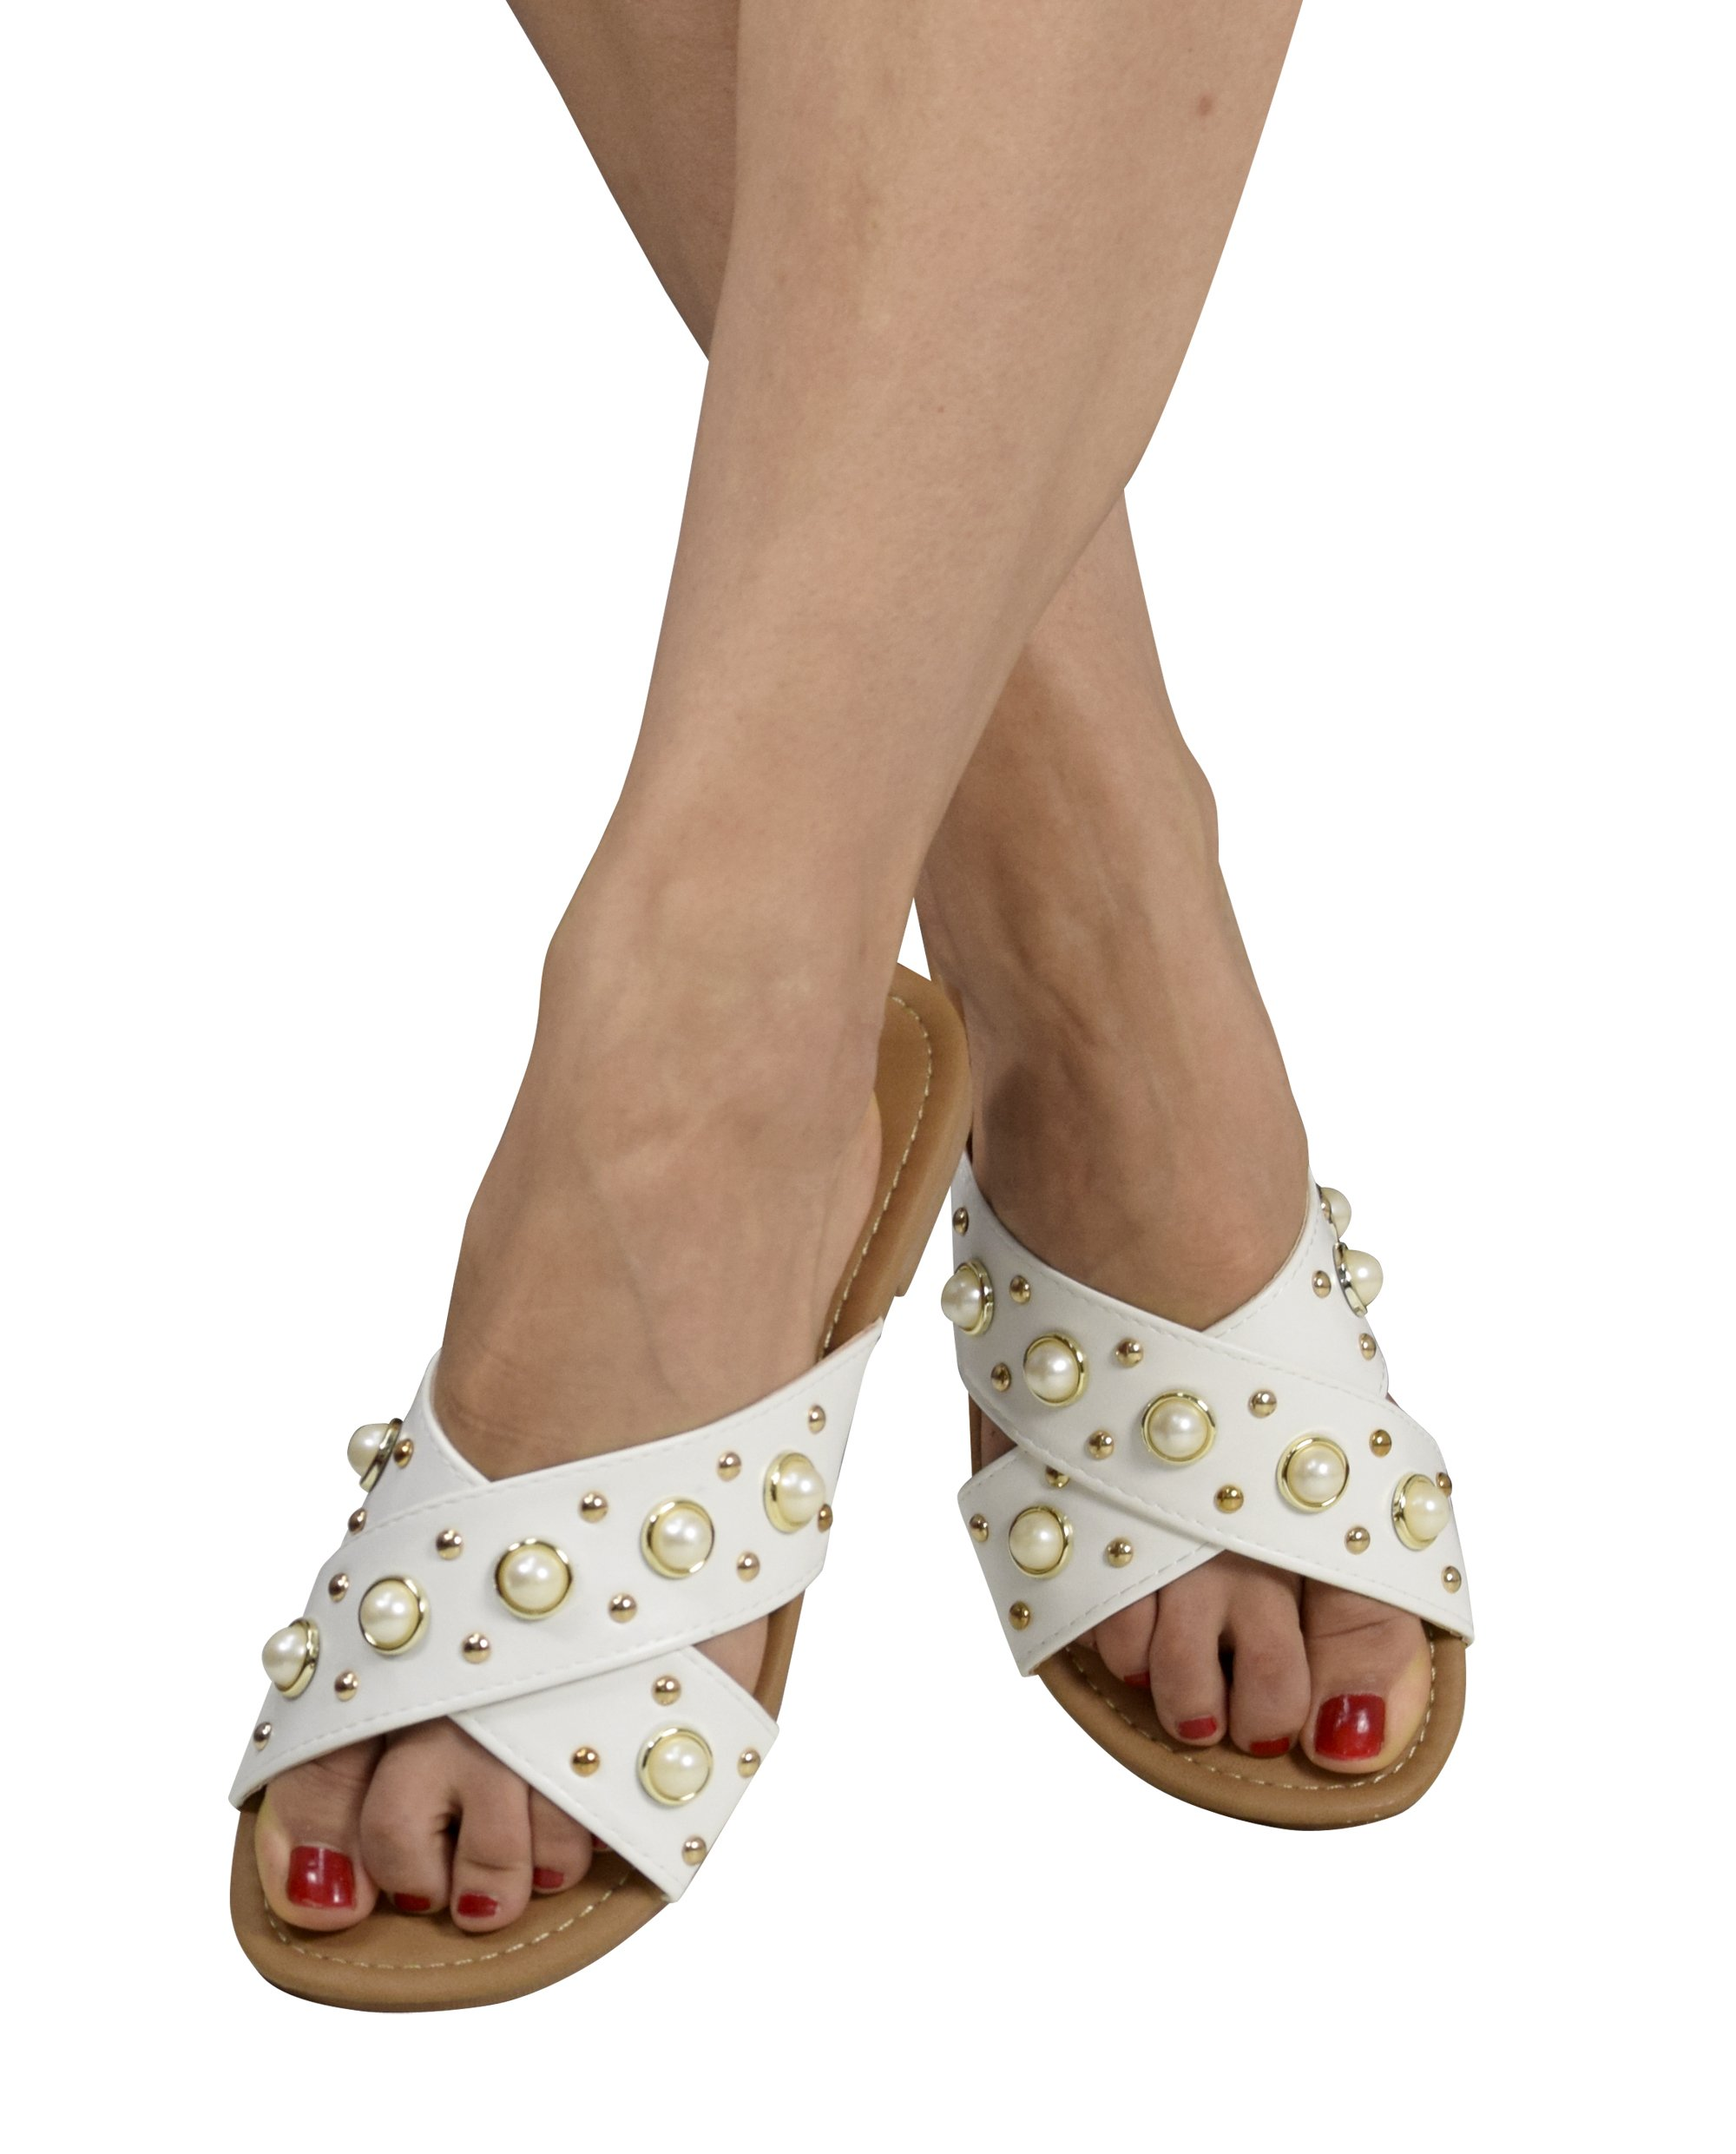 Peach Couture Womens Pearl Studded Criss Cross Band Slides Sandals White 9 B(M) US